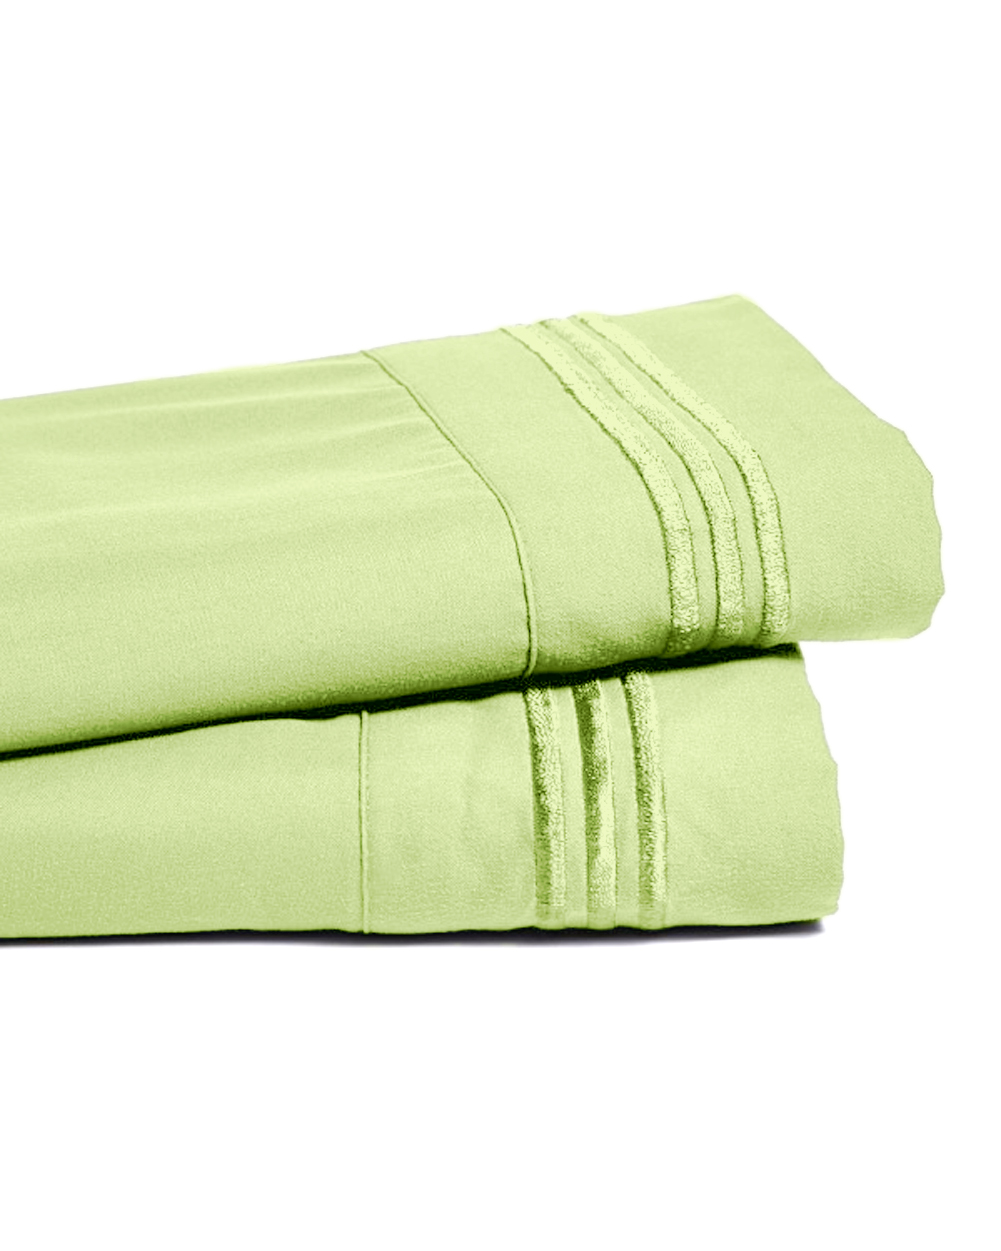 Deep Pocket Bamboo Bed Sheet - Luxury 2200 Embroidered Wrinkle, Fade and Stain Resistant Sheets - Mint Green King Size